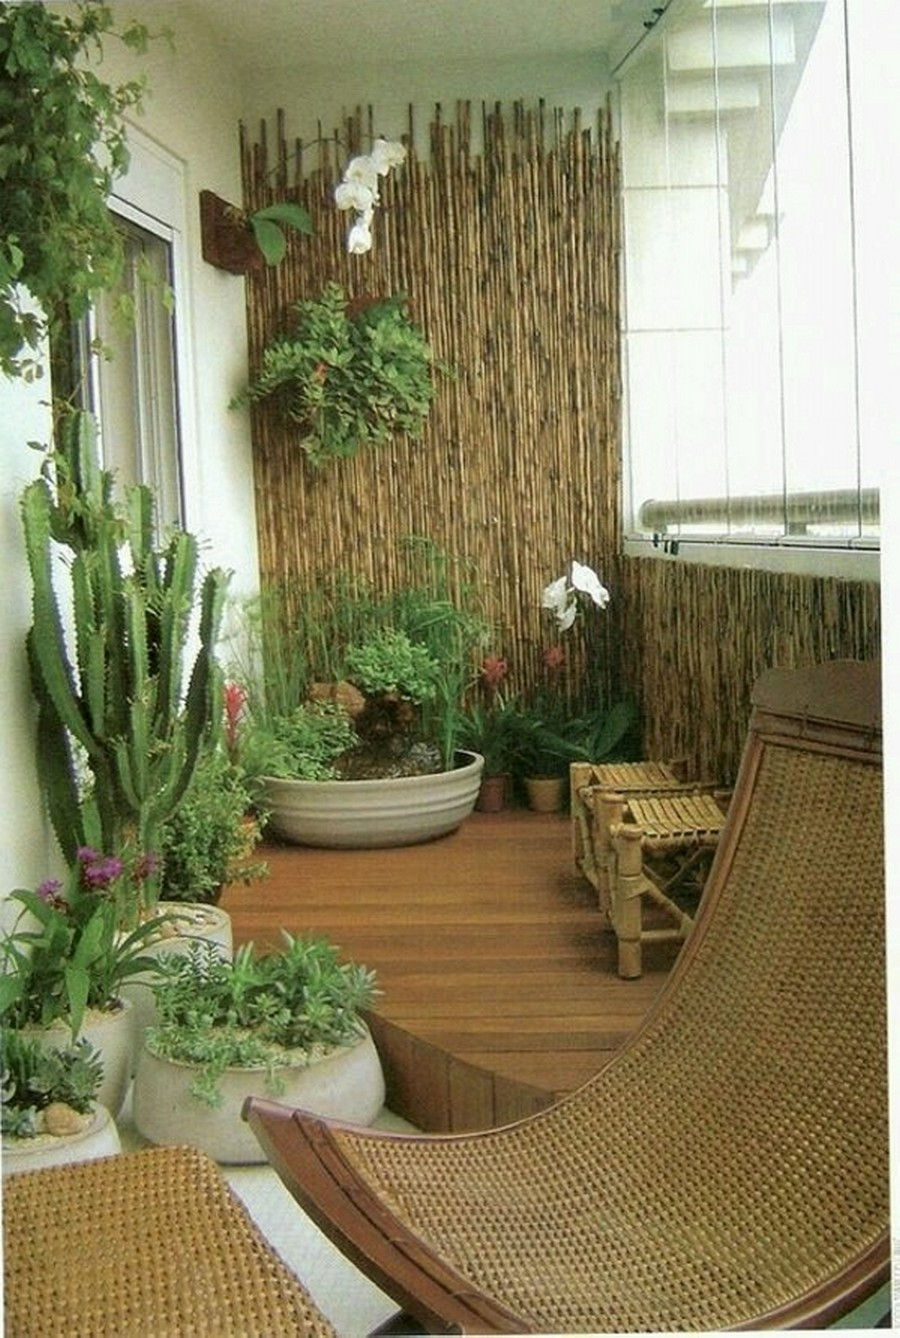 10 clever ways to decorate your balcony area recycled things for Outdoor patio accessories